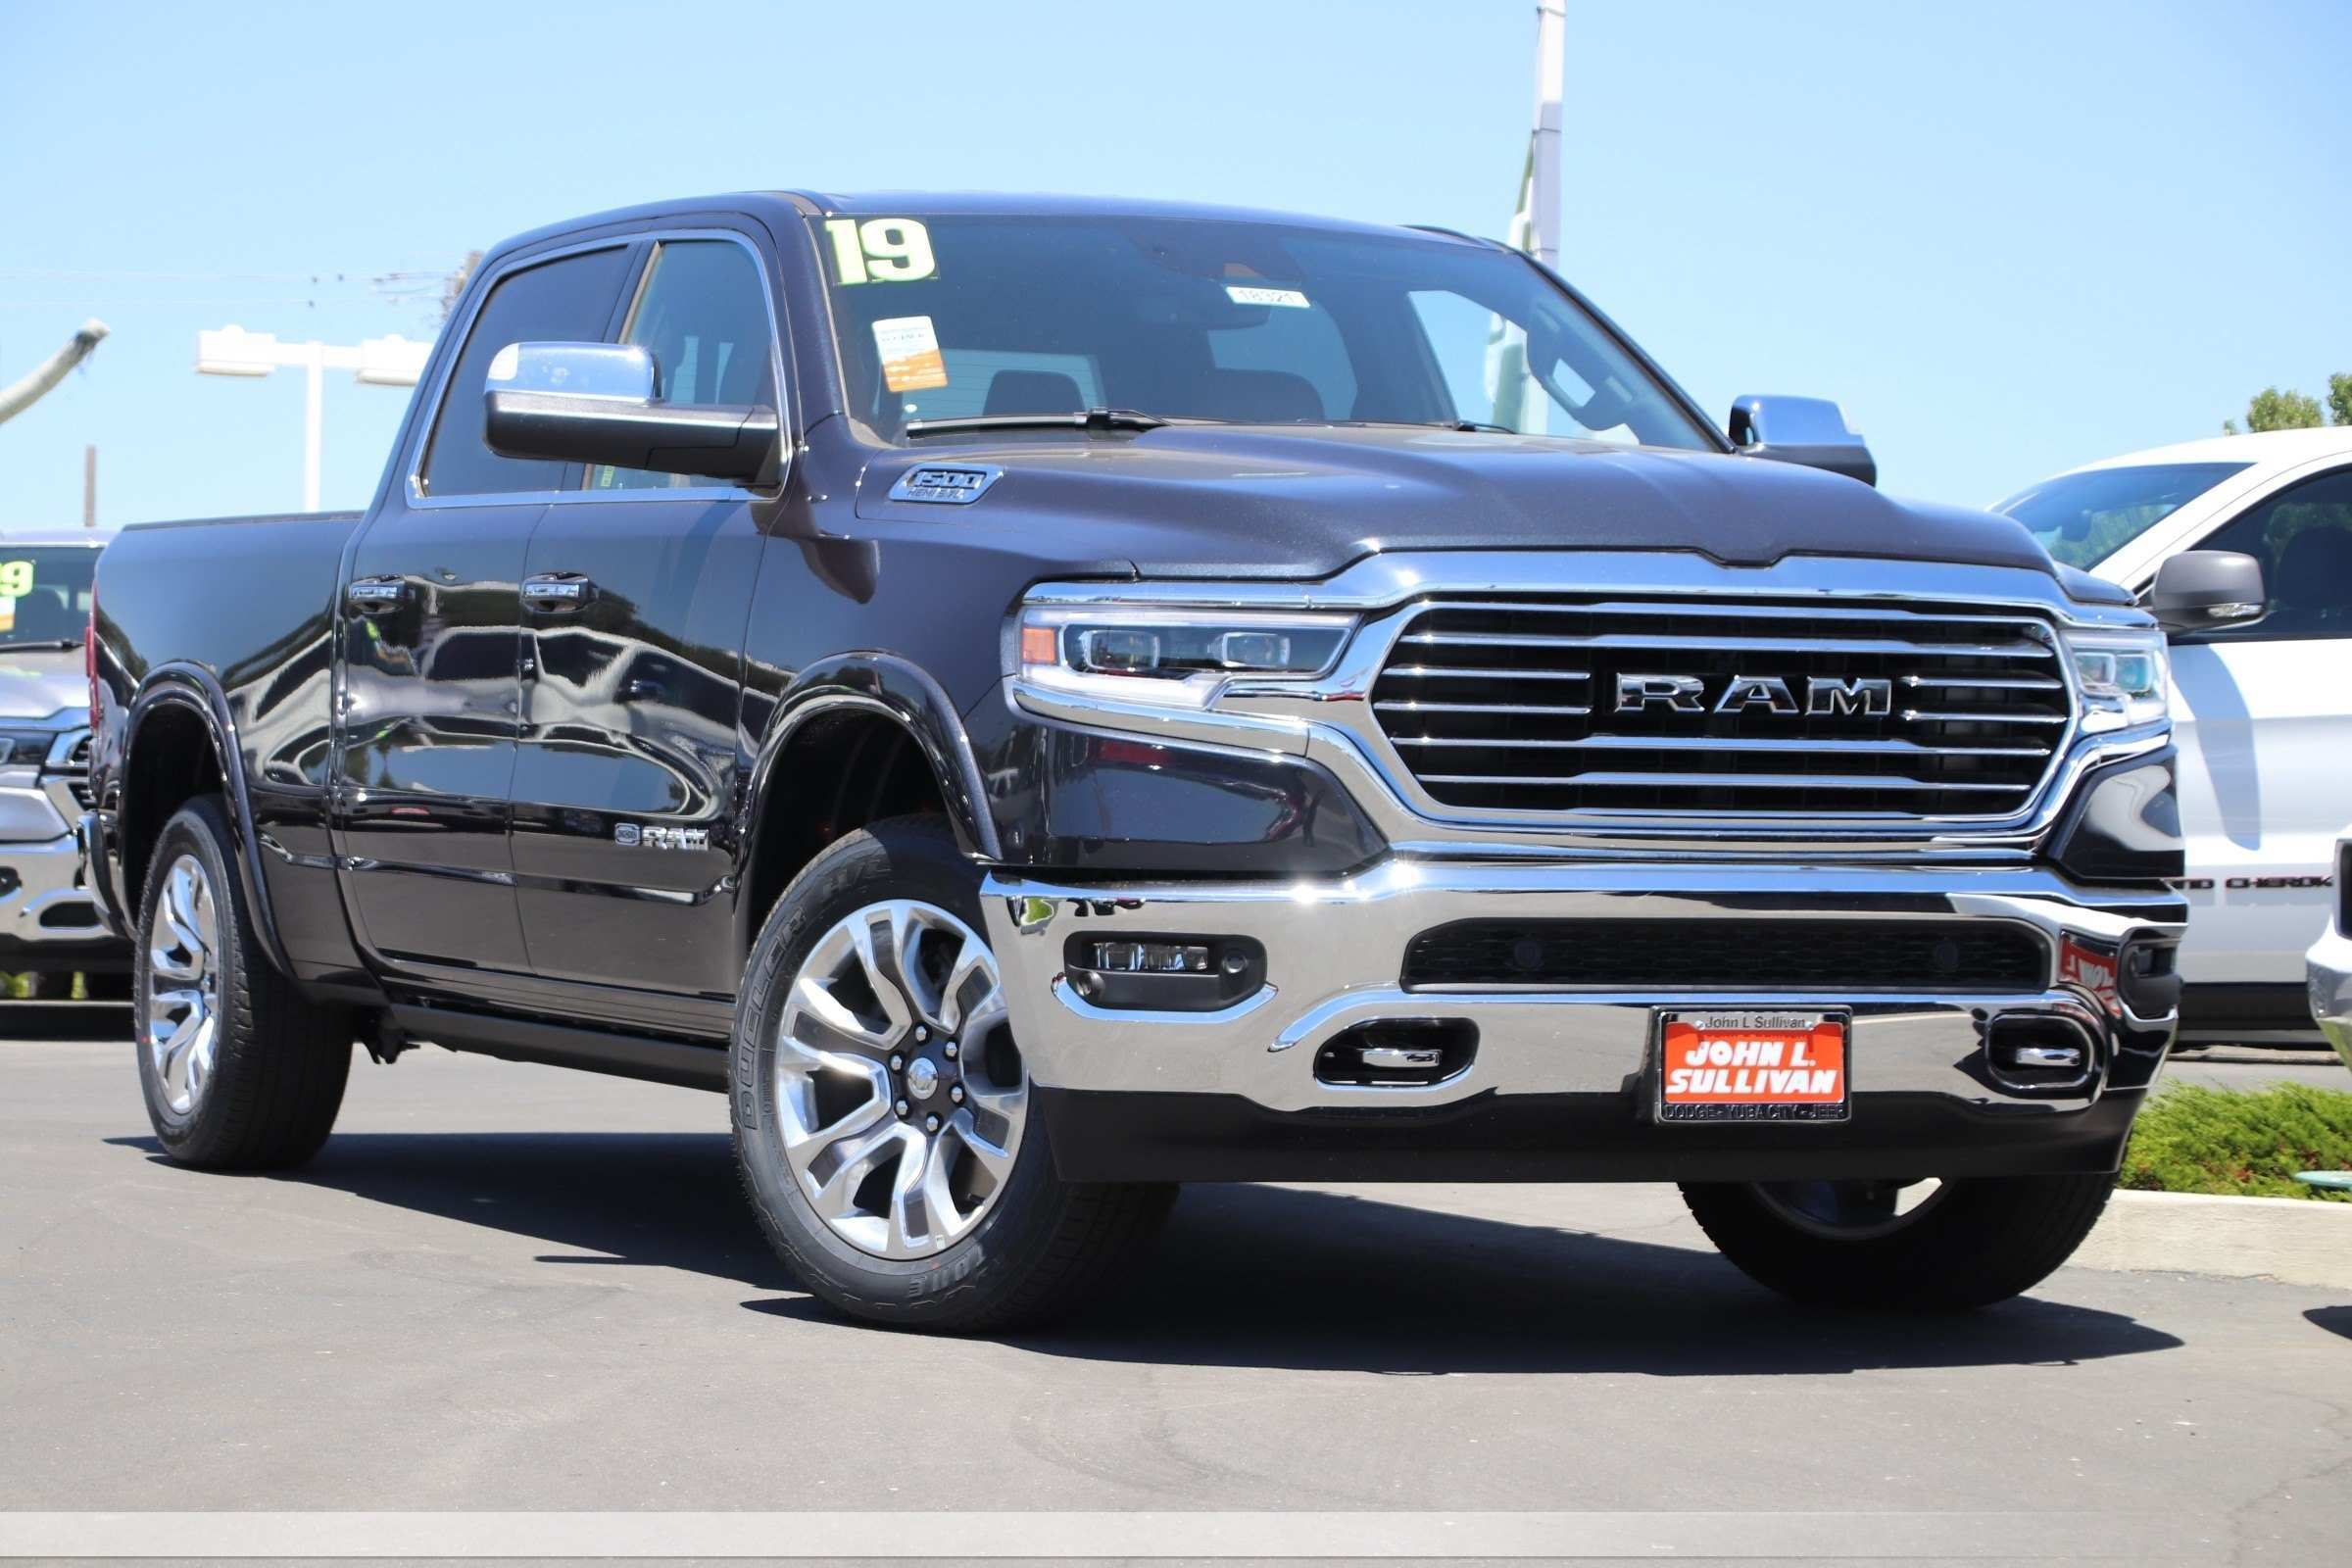 74 Best Review New Ram Dodge 2019 Picture Release Date And Review Model for New Ram Dodge 2019 Picture Release Date And Review